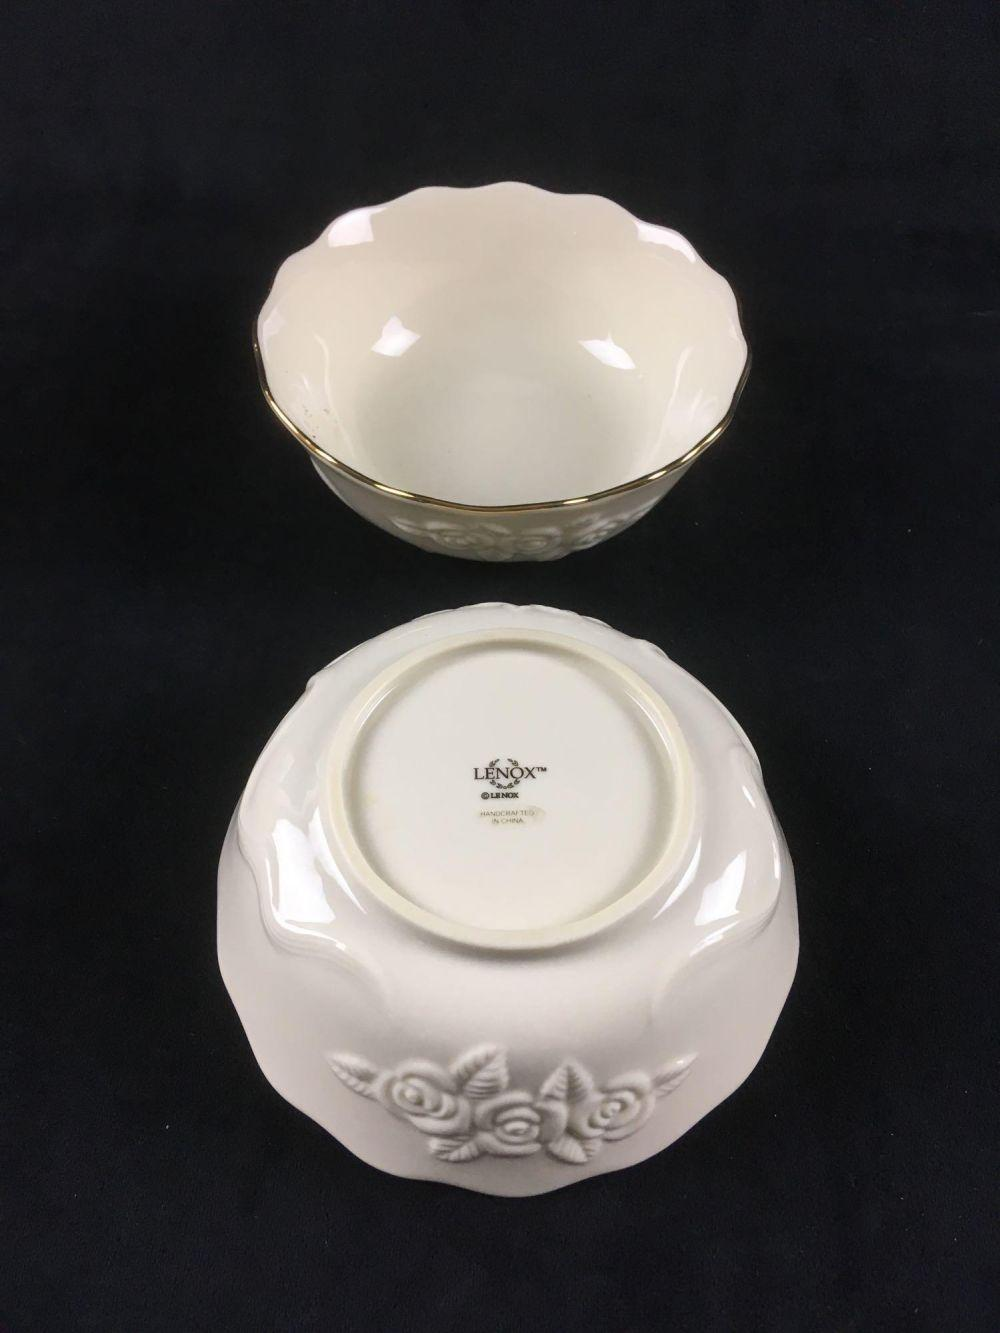 Lot 439: Pair of Vintage Lenox Nut or Candy Bowls in Rosebud Pattern with Gold Accent